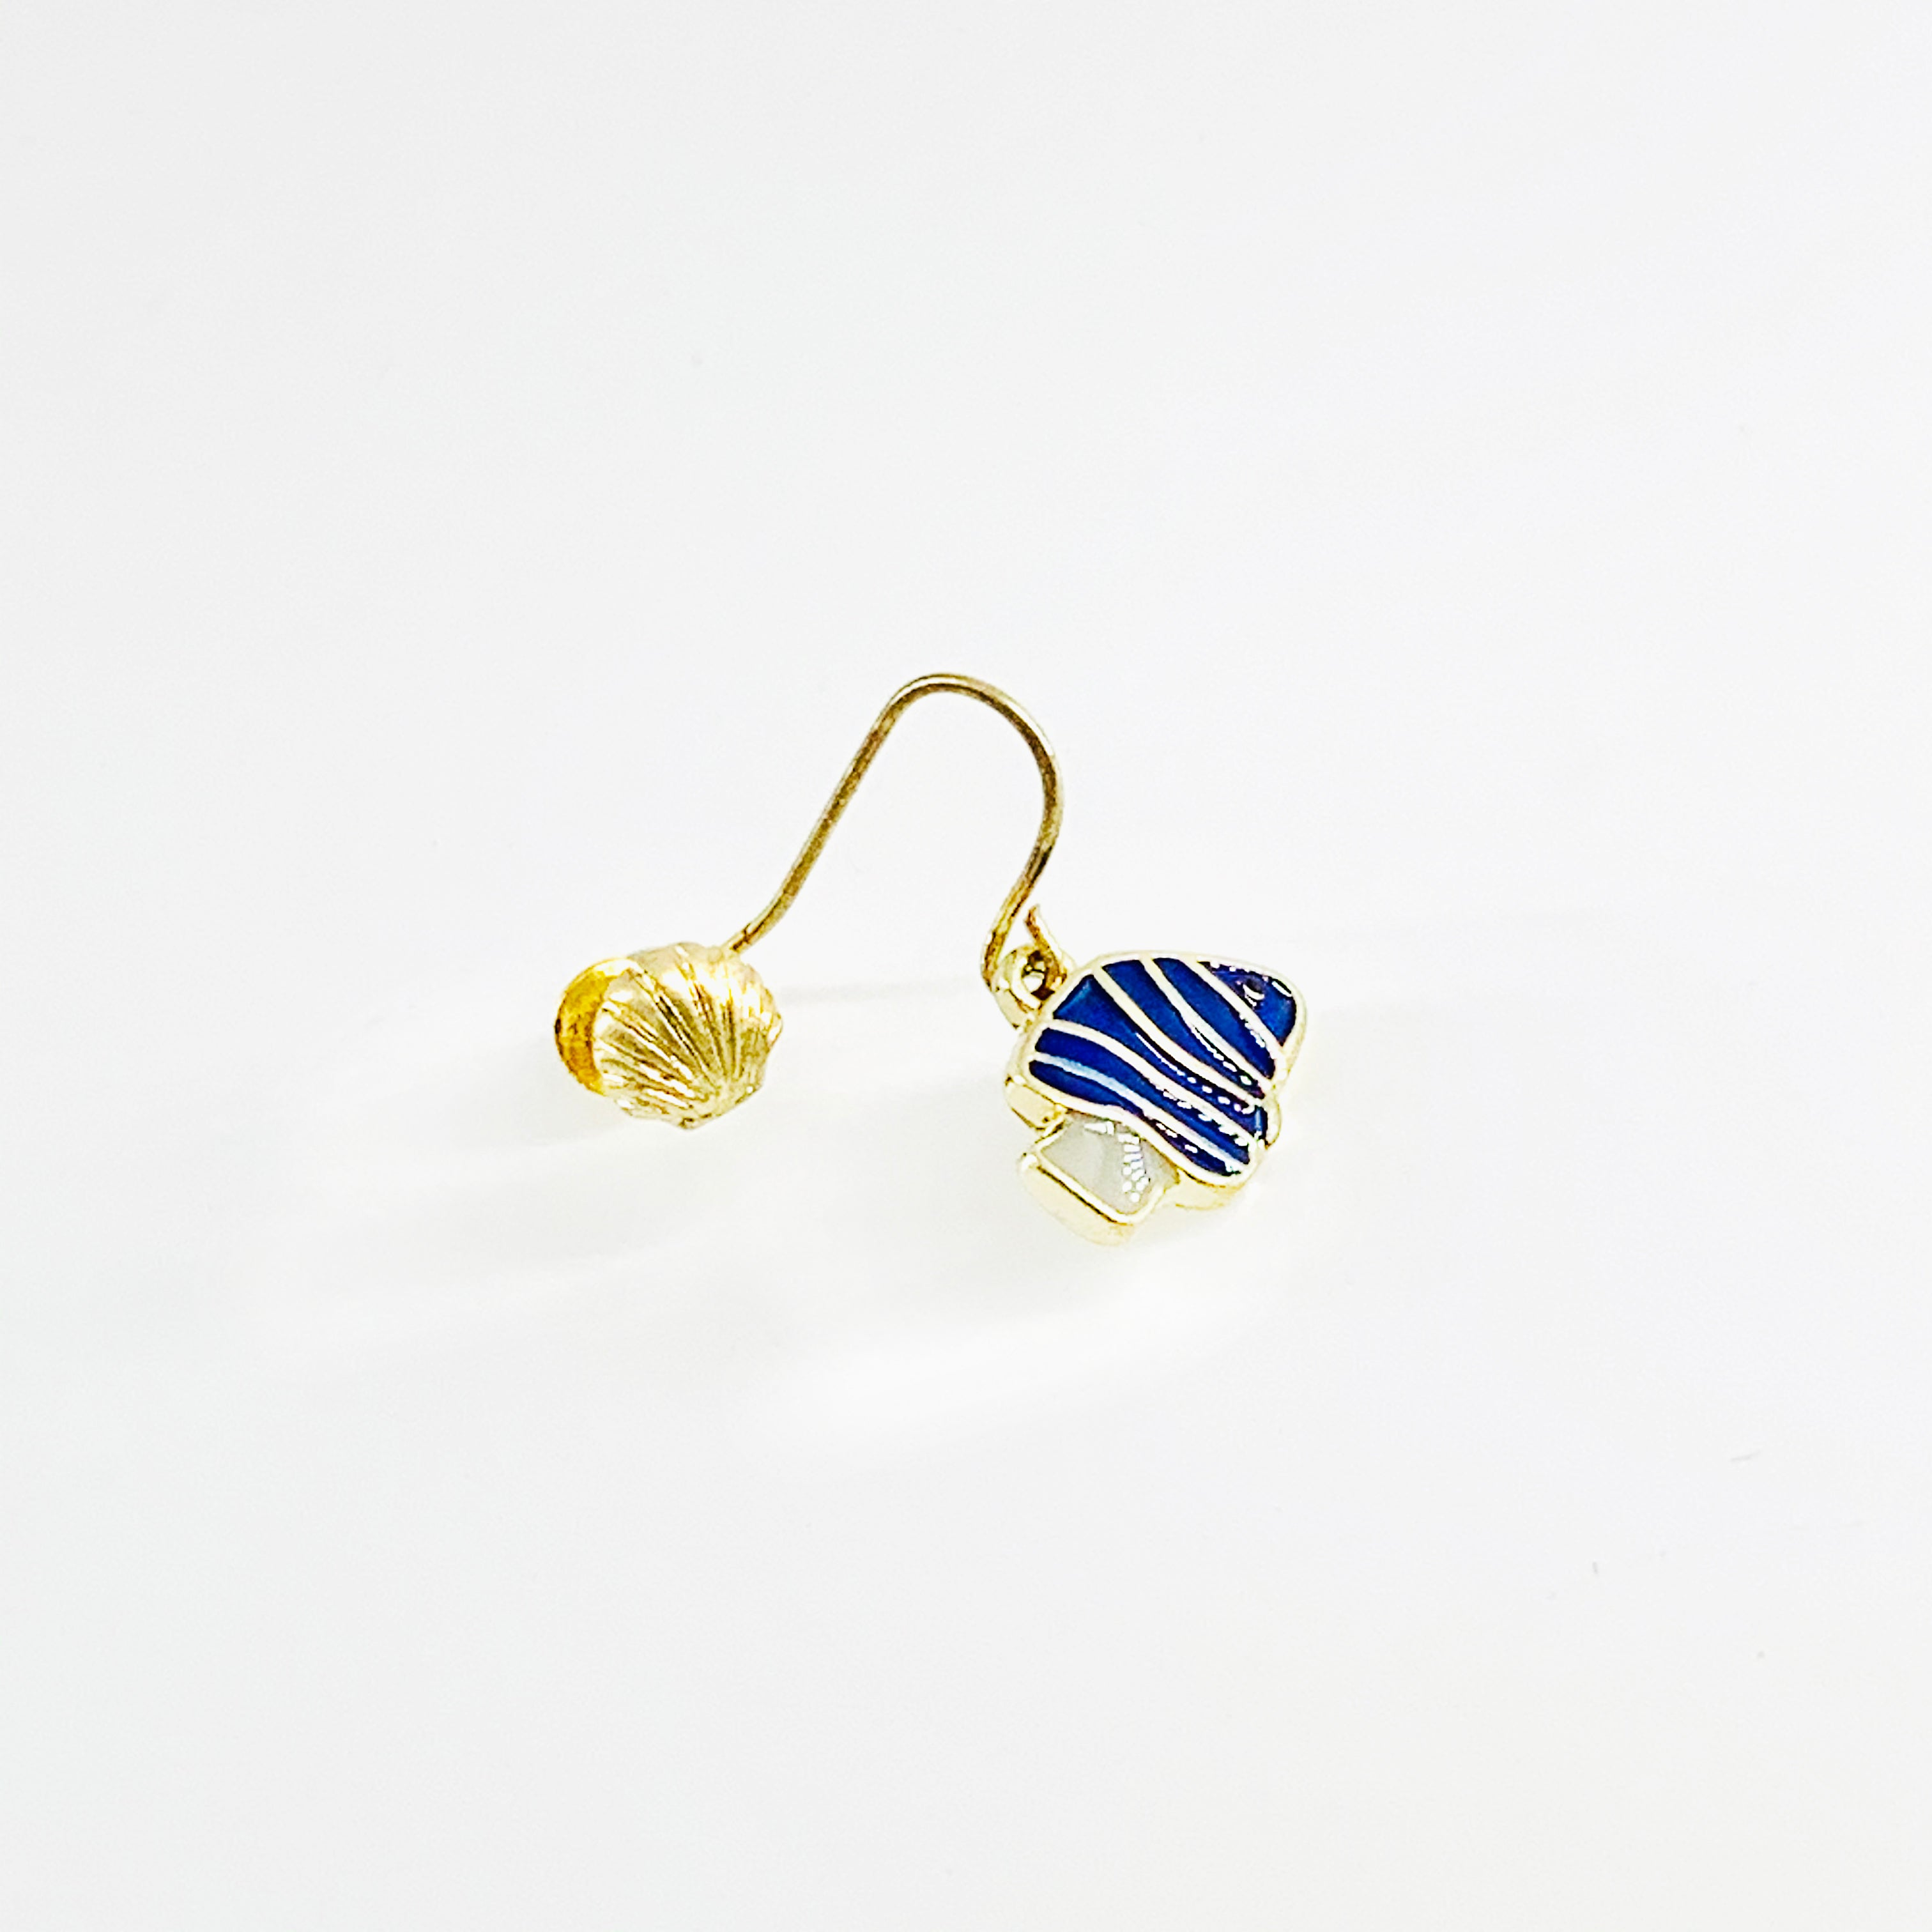 Nemo ear studs in blue with sea shells